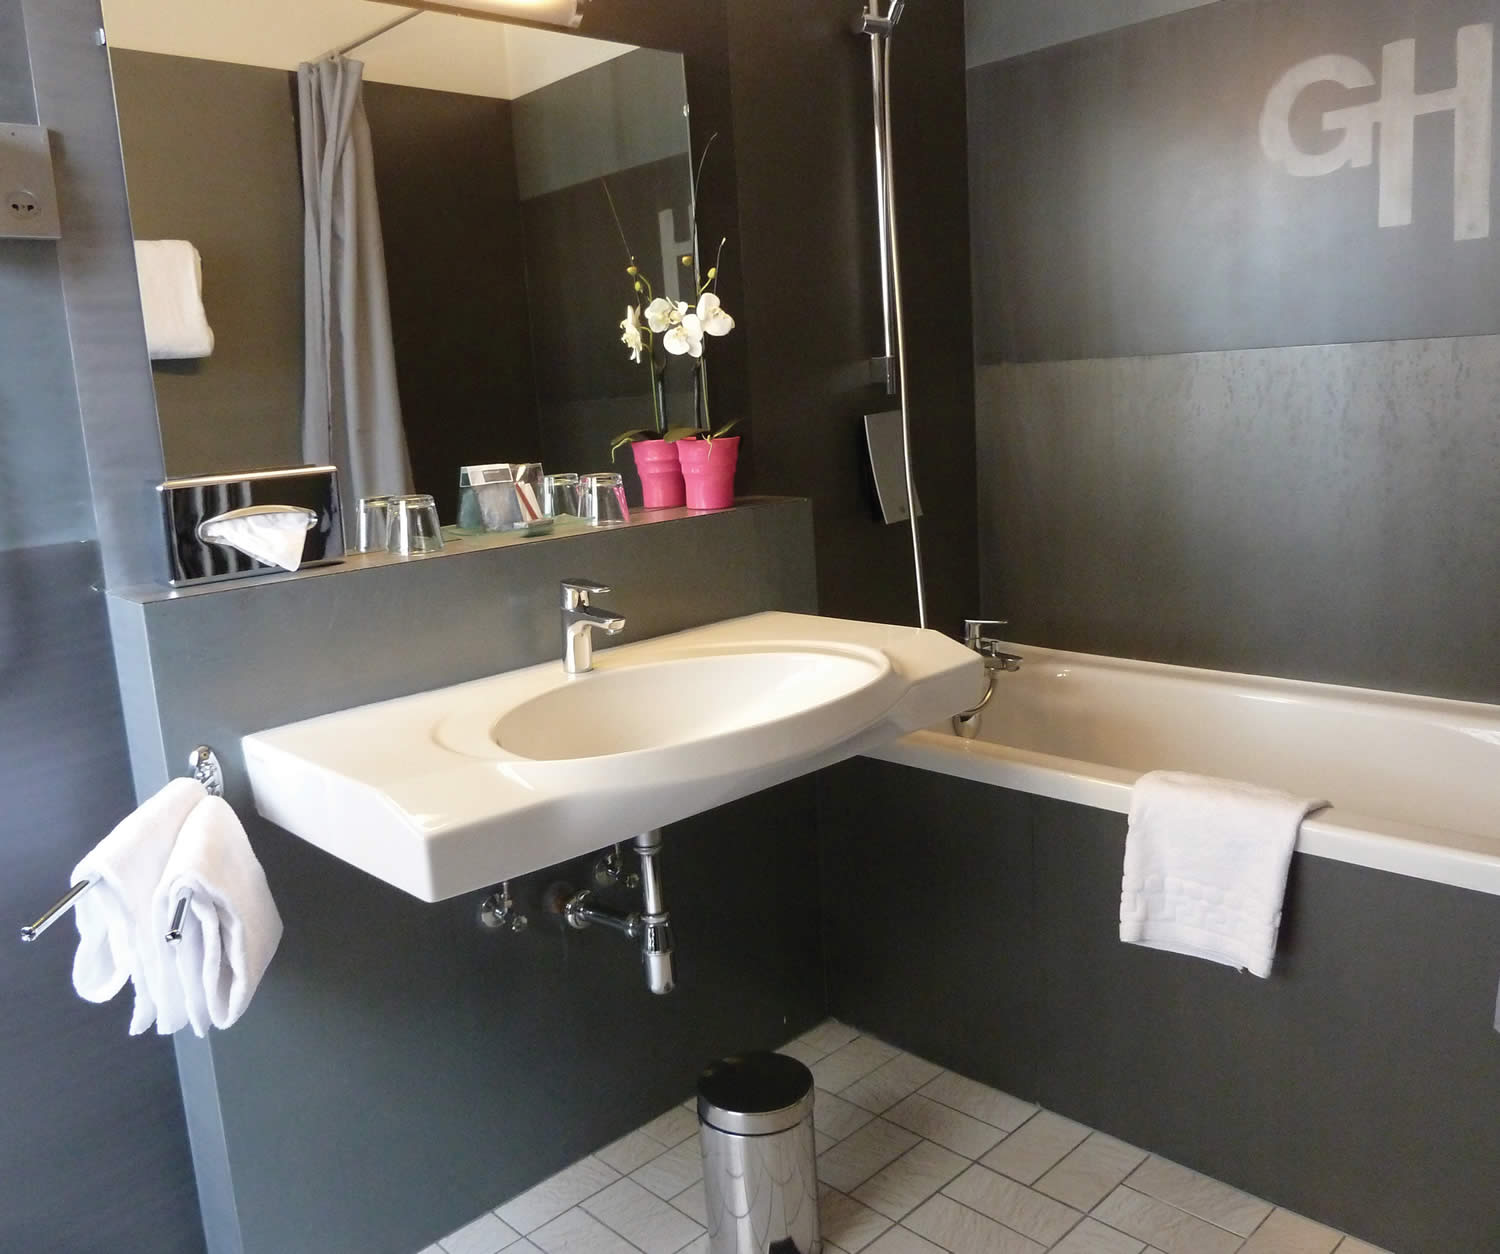 Grand hotel in strasbourg book a hotel in the center of for Salle de bain de luxe moderne